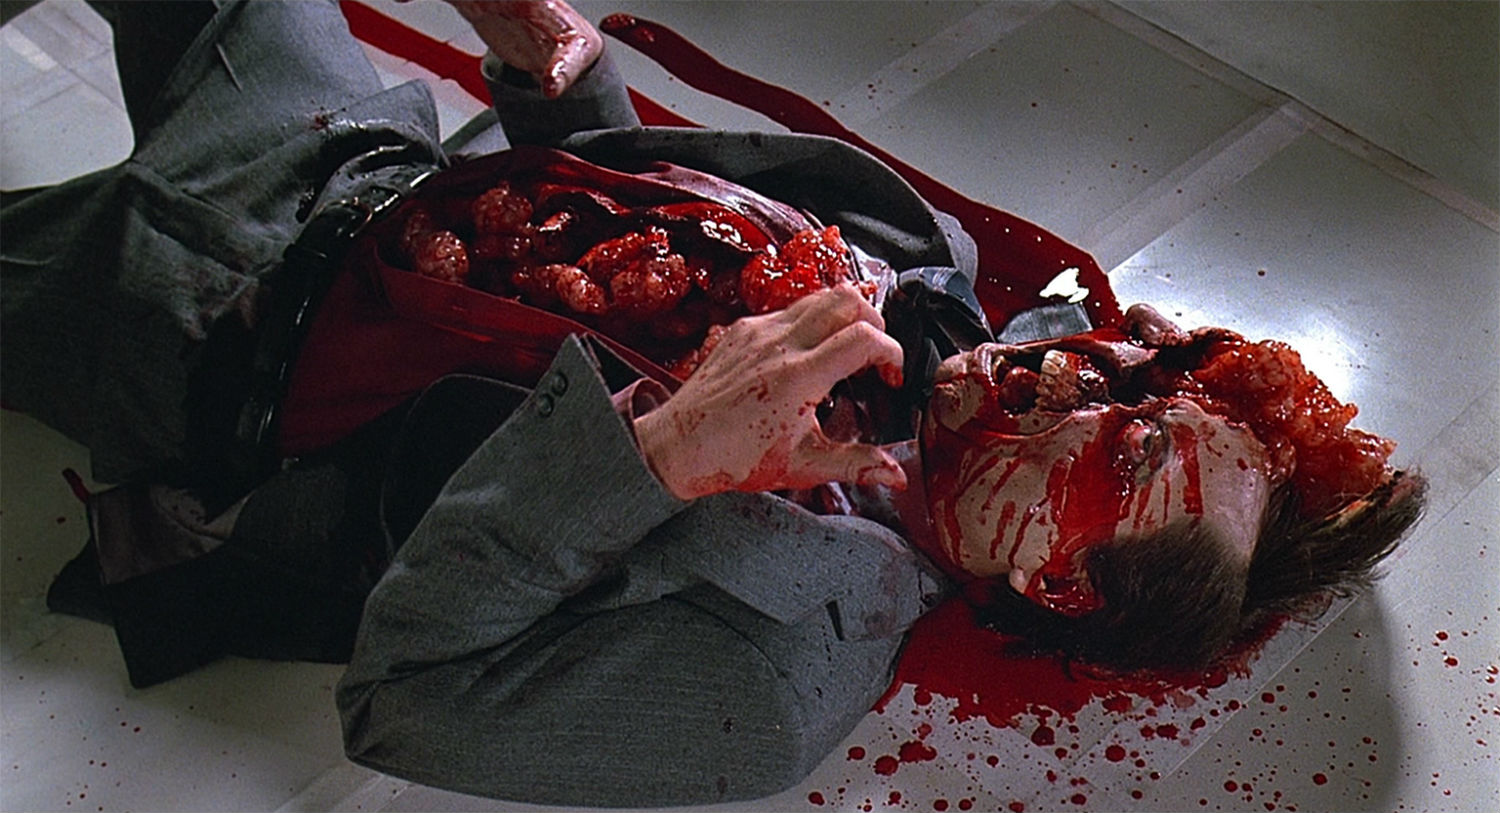 videodrome guts blood david cronenberg body horror cinema